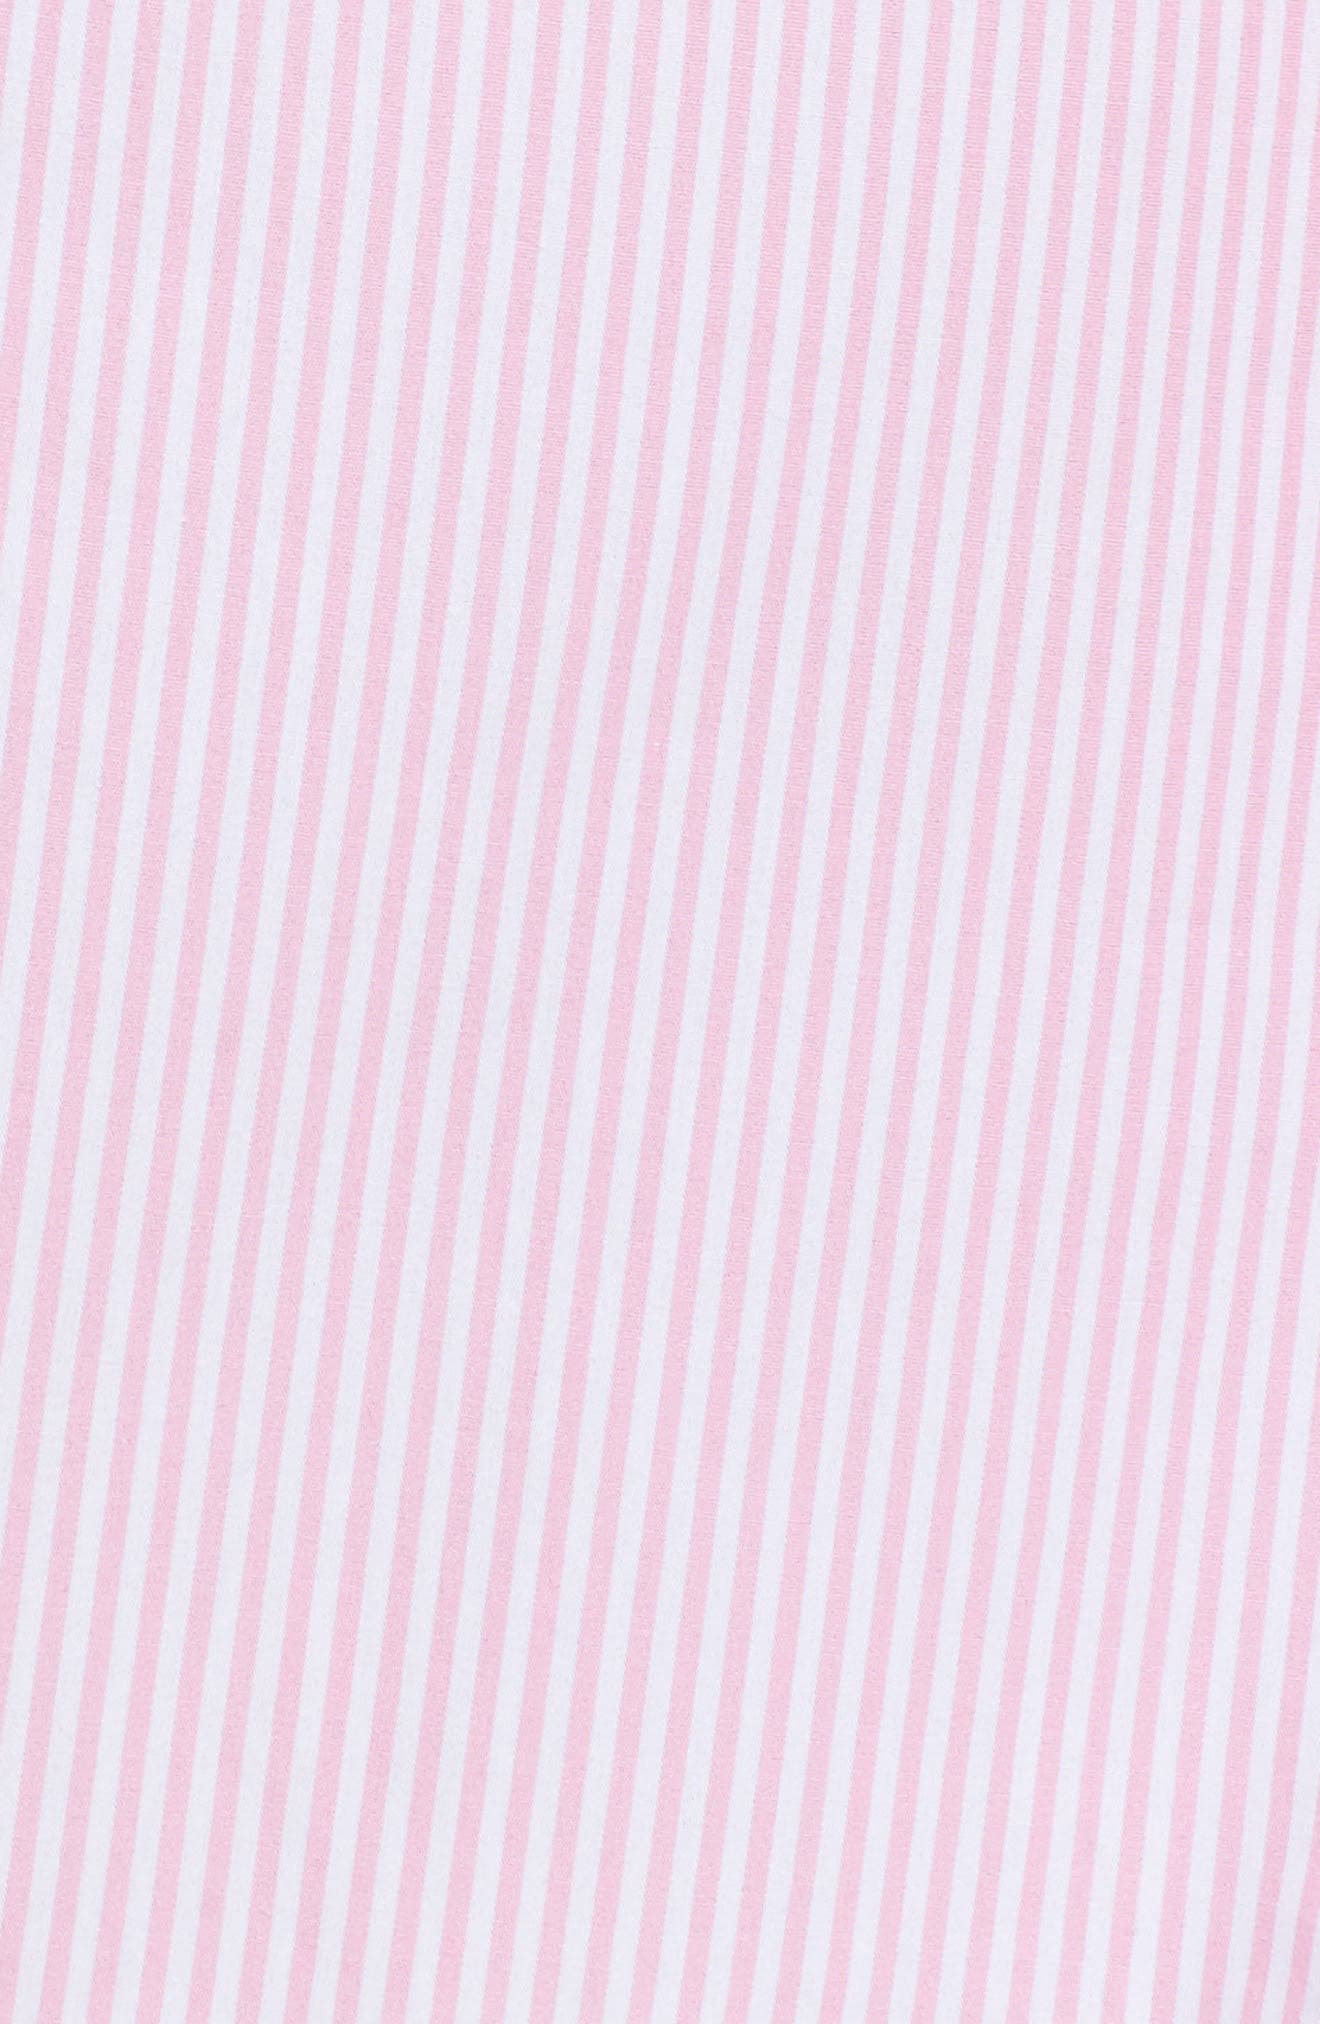 Cotton Poplin Sleep Shirt,                             Alternate thumbnail 4, color,                             Stripe Lagoon Pink/ White